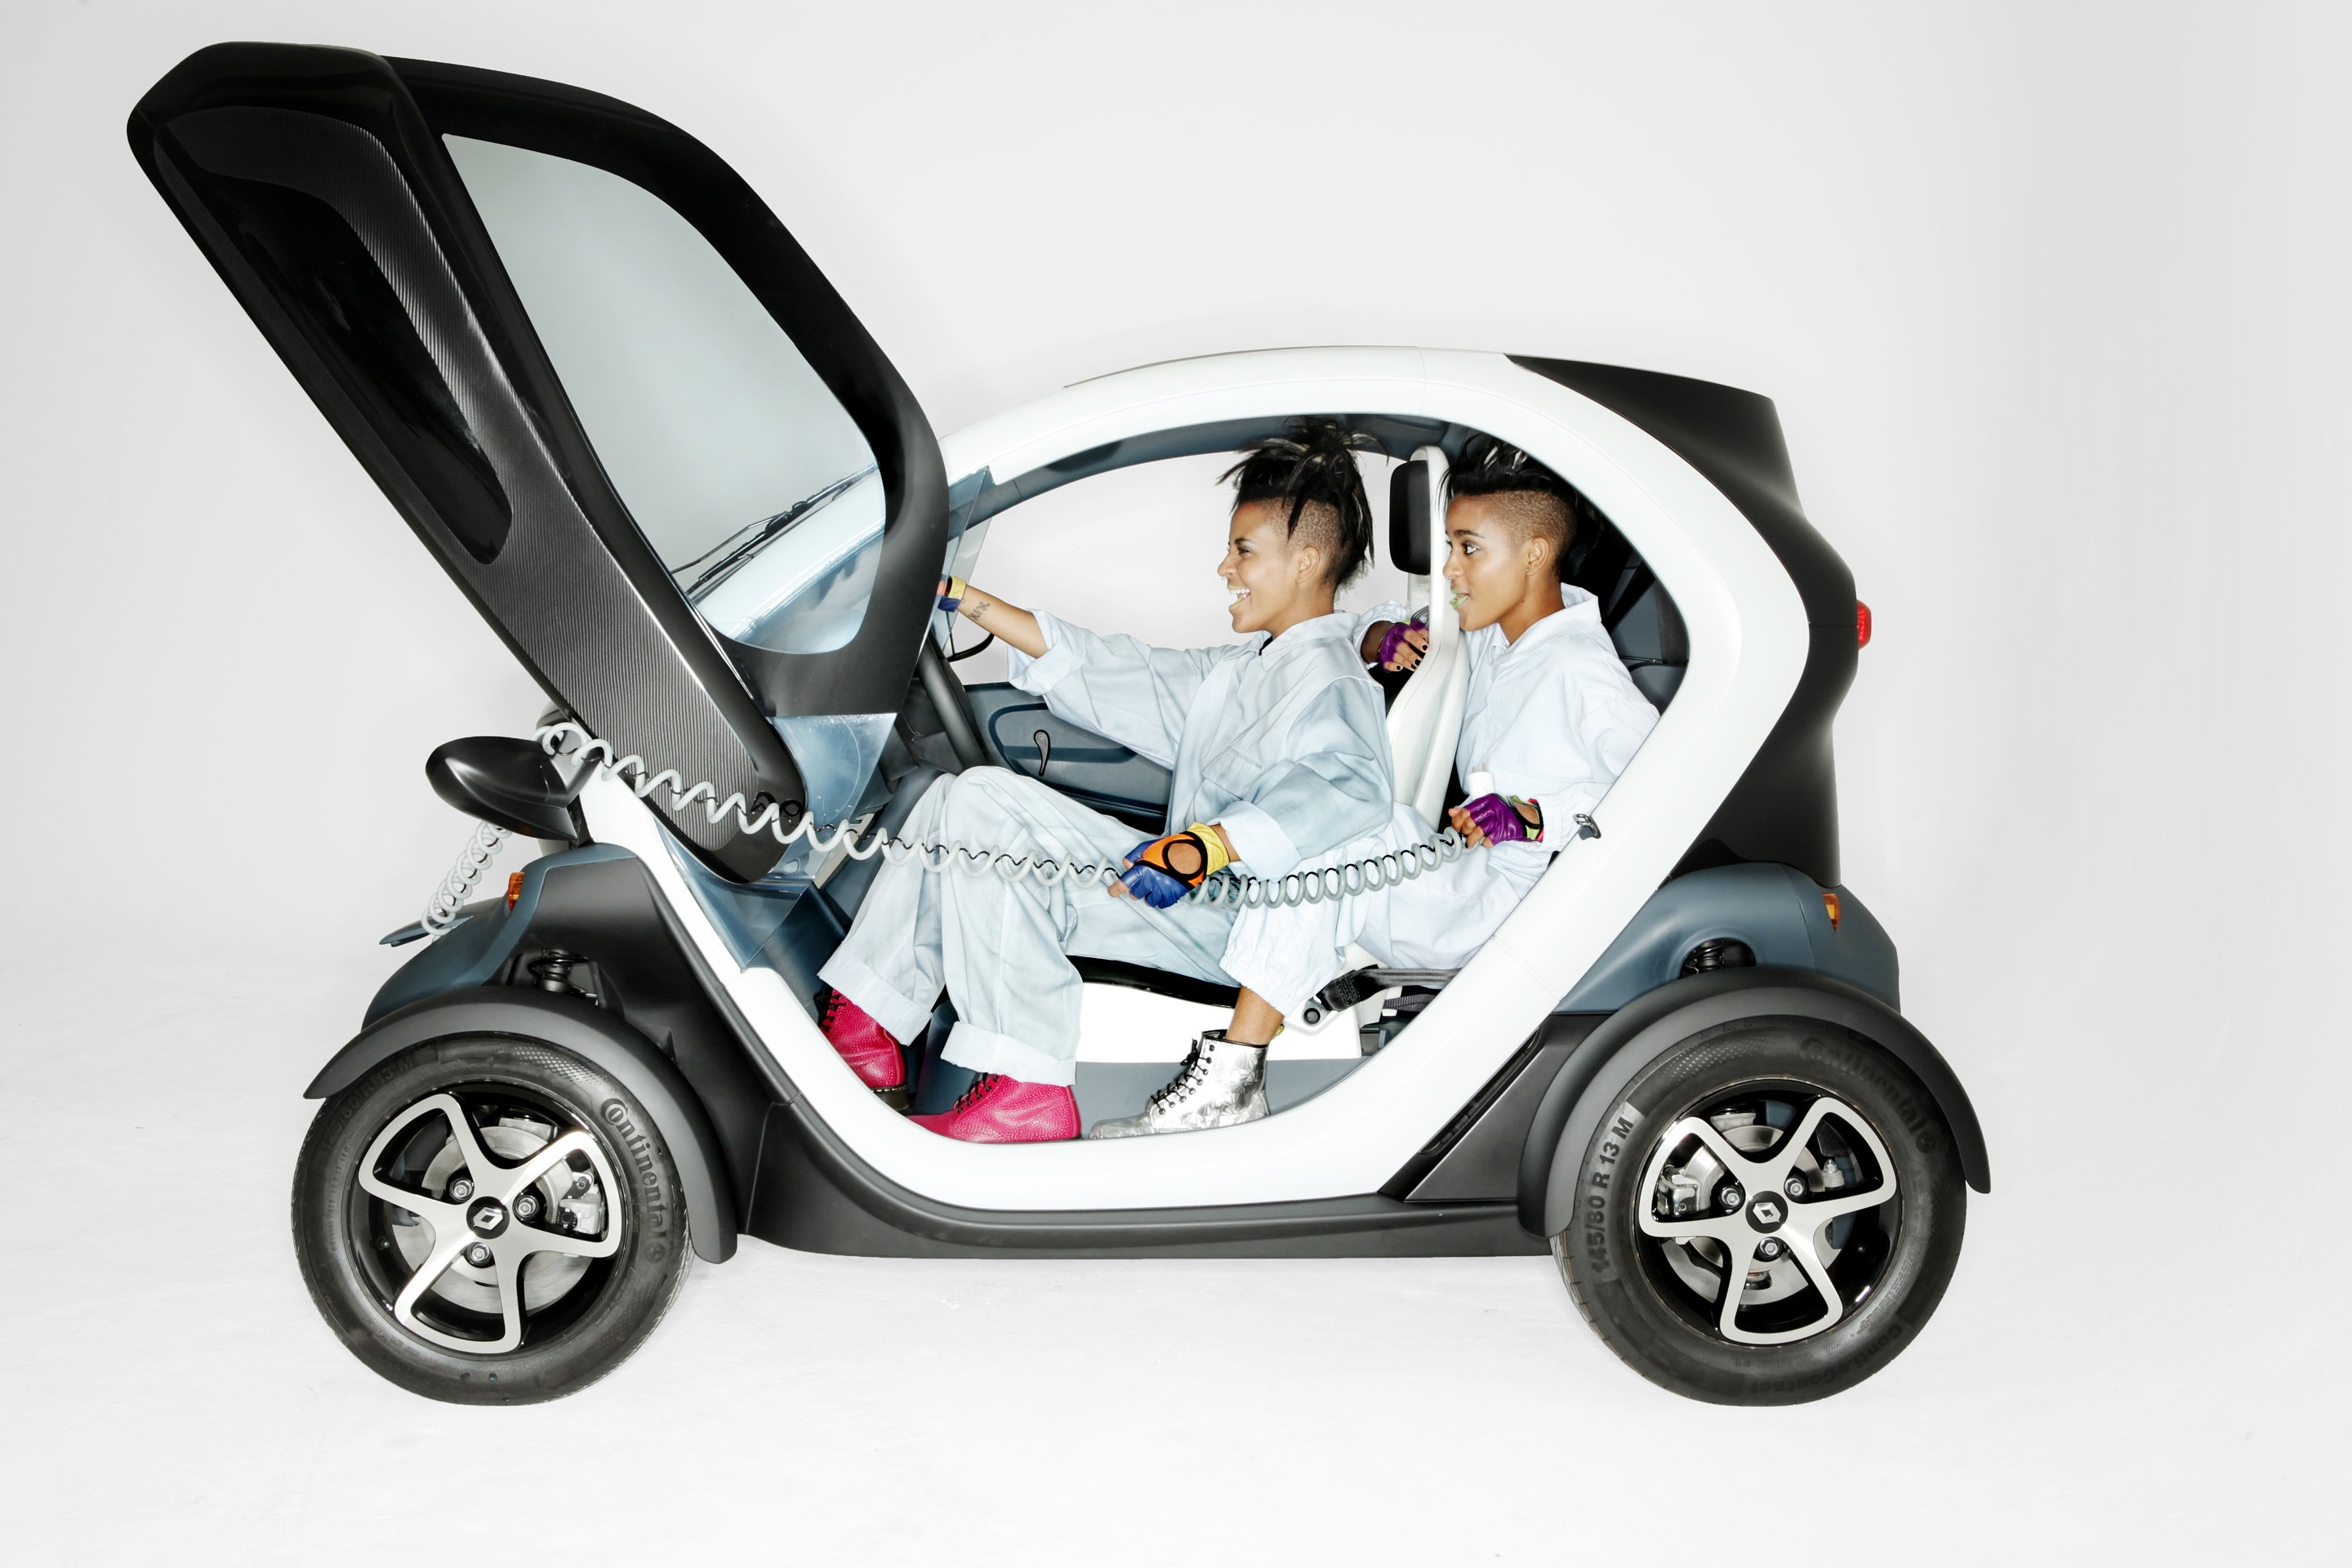 Renault Twizy An Unprecedented Urban Mobility Solution